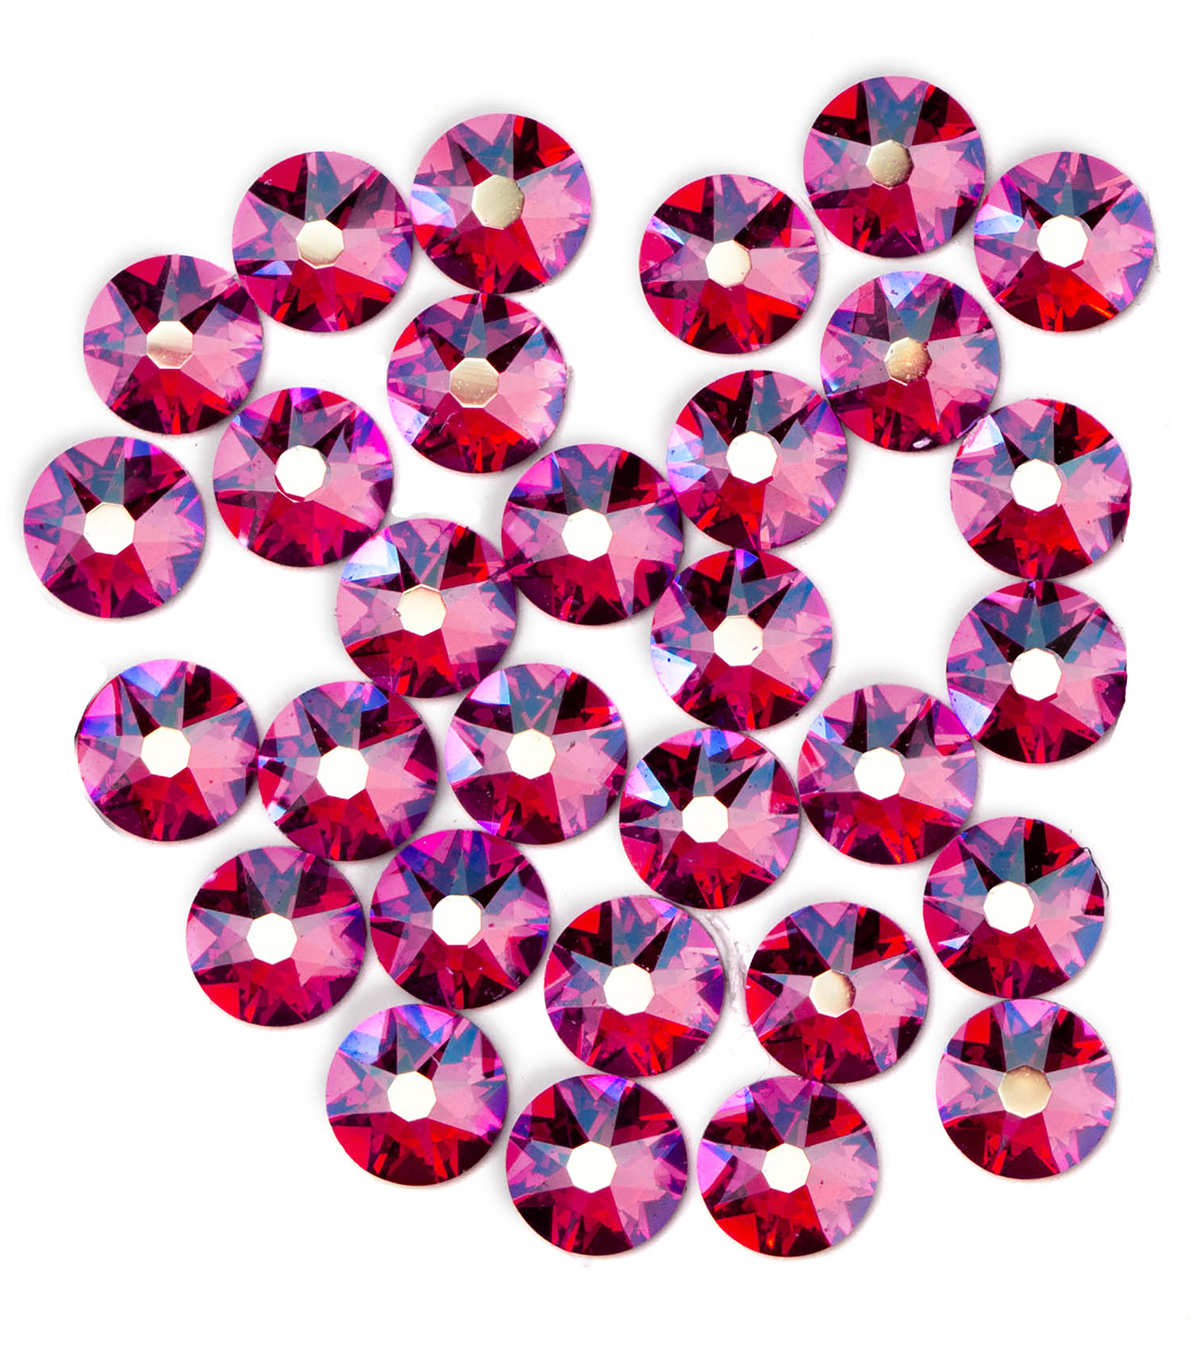 Swarovski Create Your Style 30 pk Hotfix Crystals-Siam Shimmer